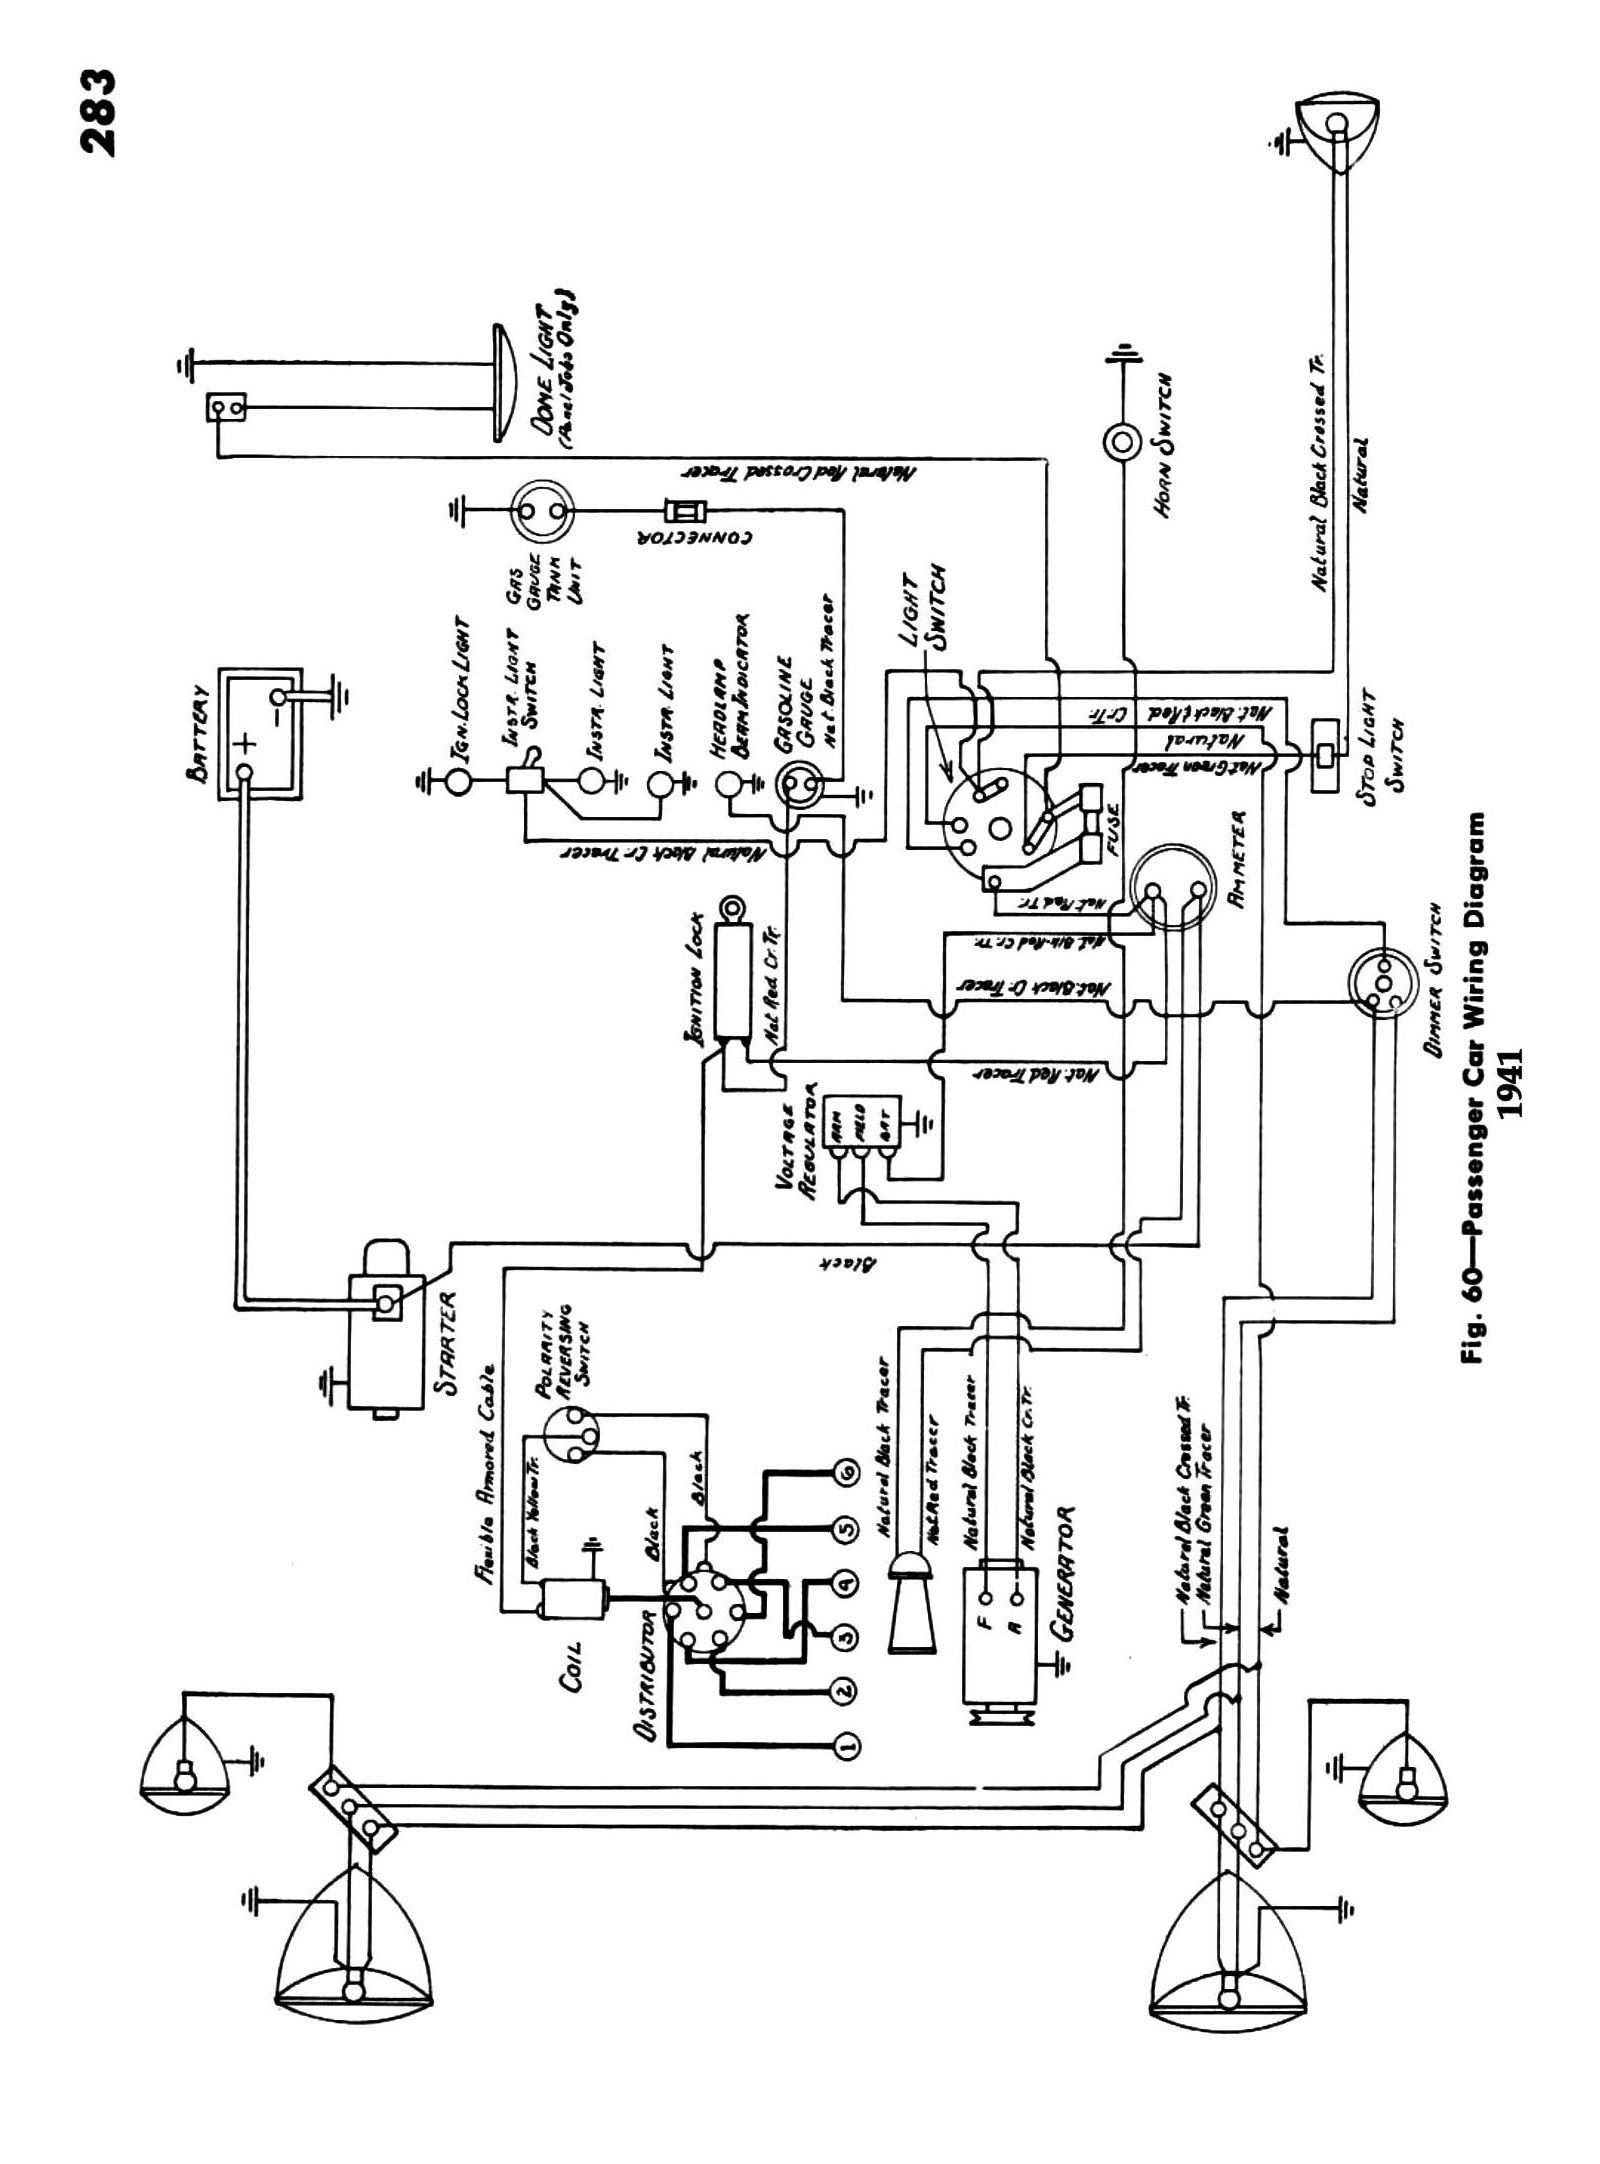 hight resolution of international truck wiring diagram wiring diagram impinternational truck battery diagrams wiring diagram schema international truck starter